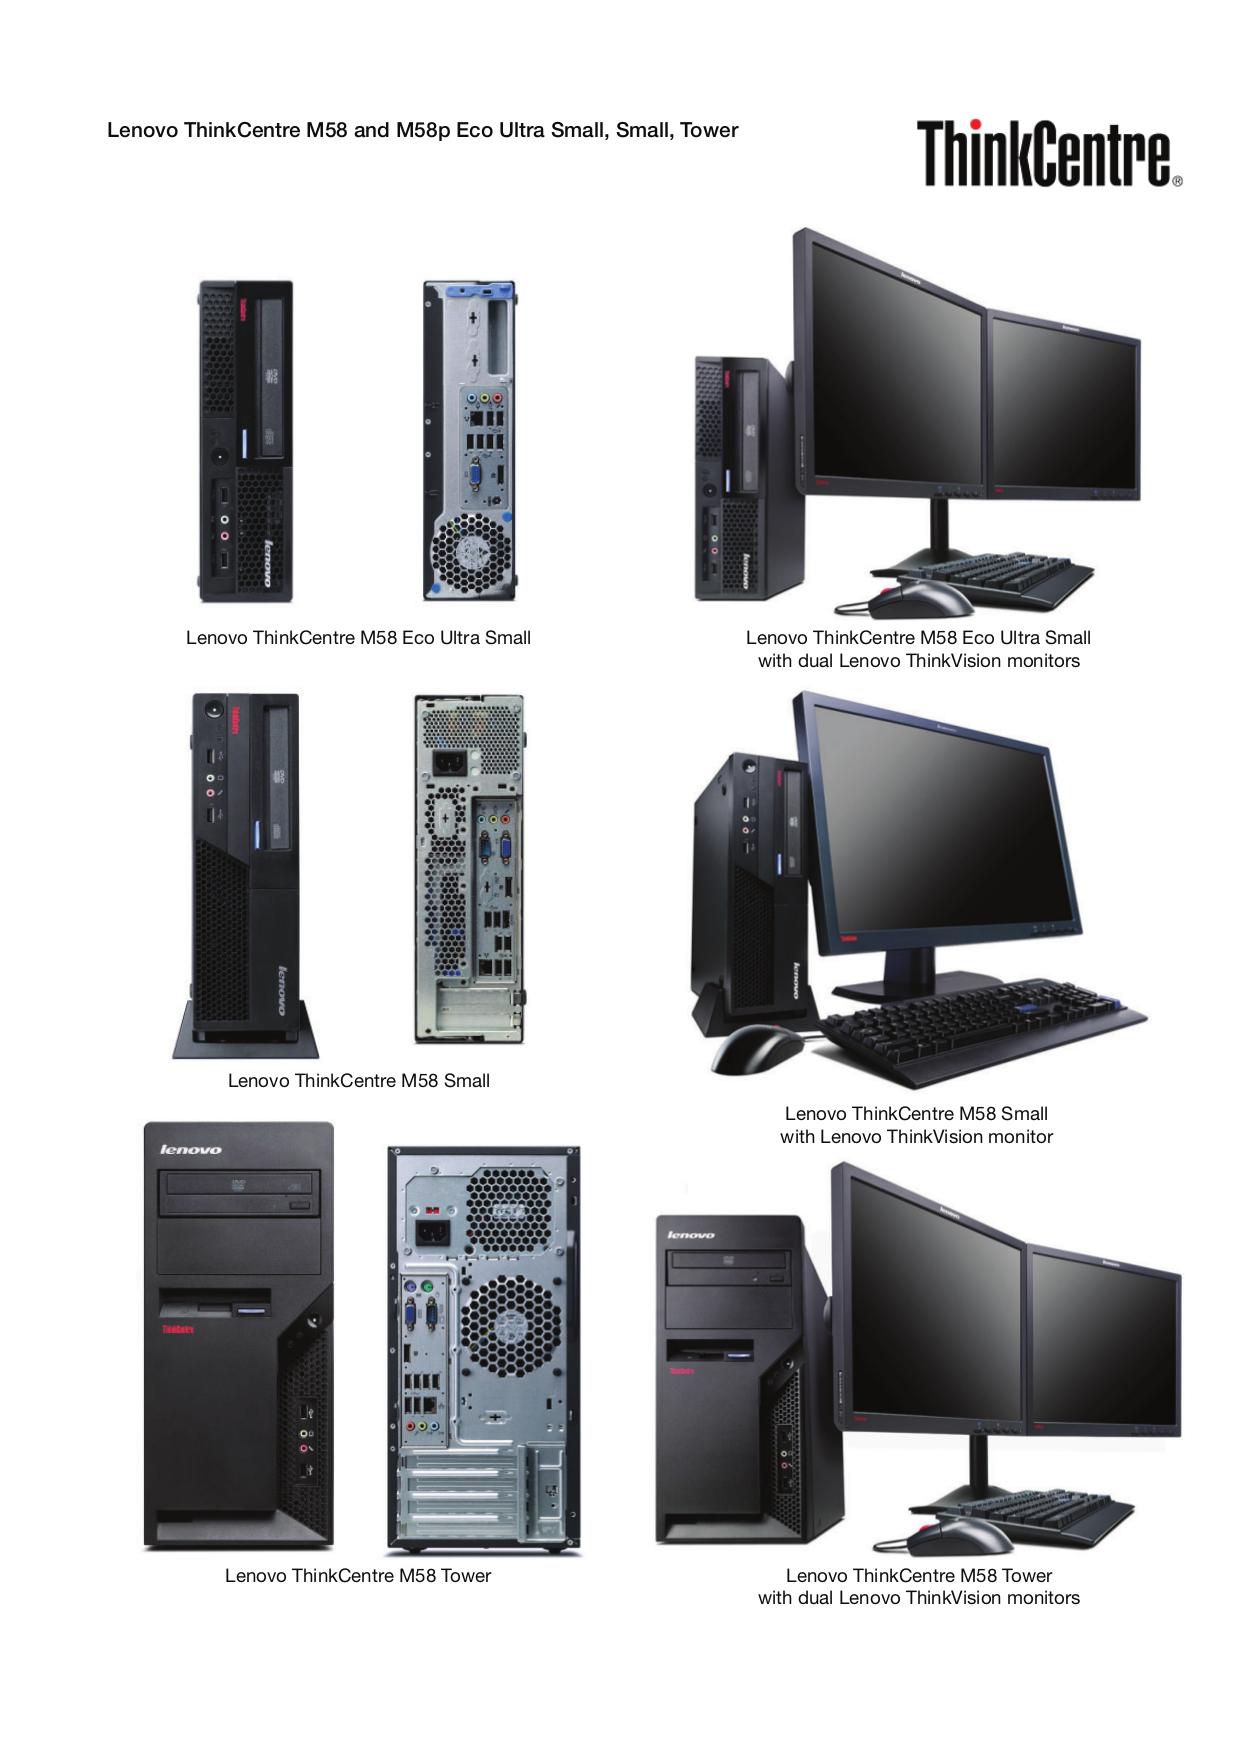 pdf for Lenovo Desktop ThinkCentre M58p 7484 manual